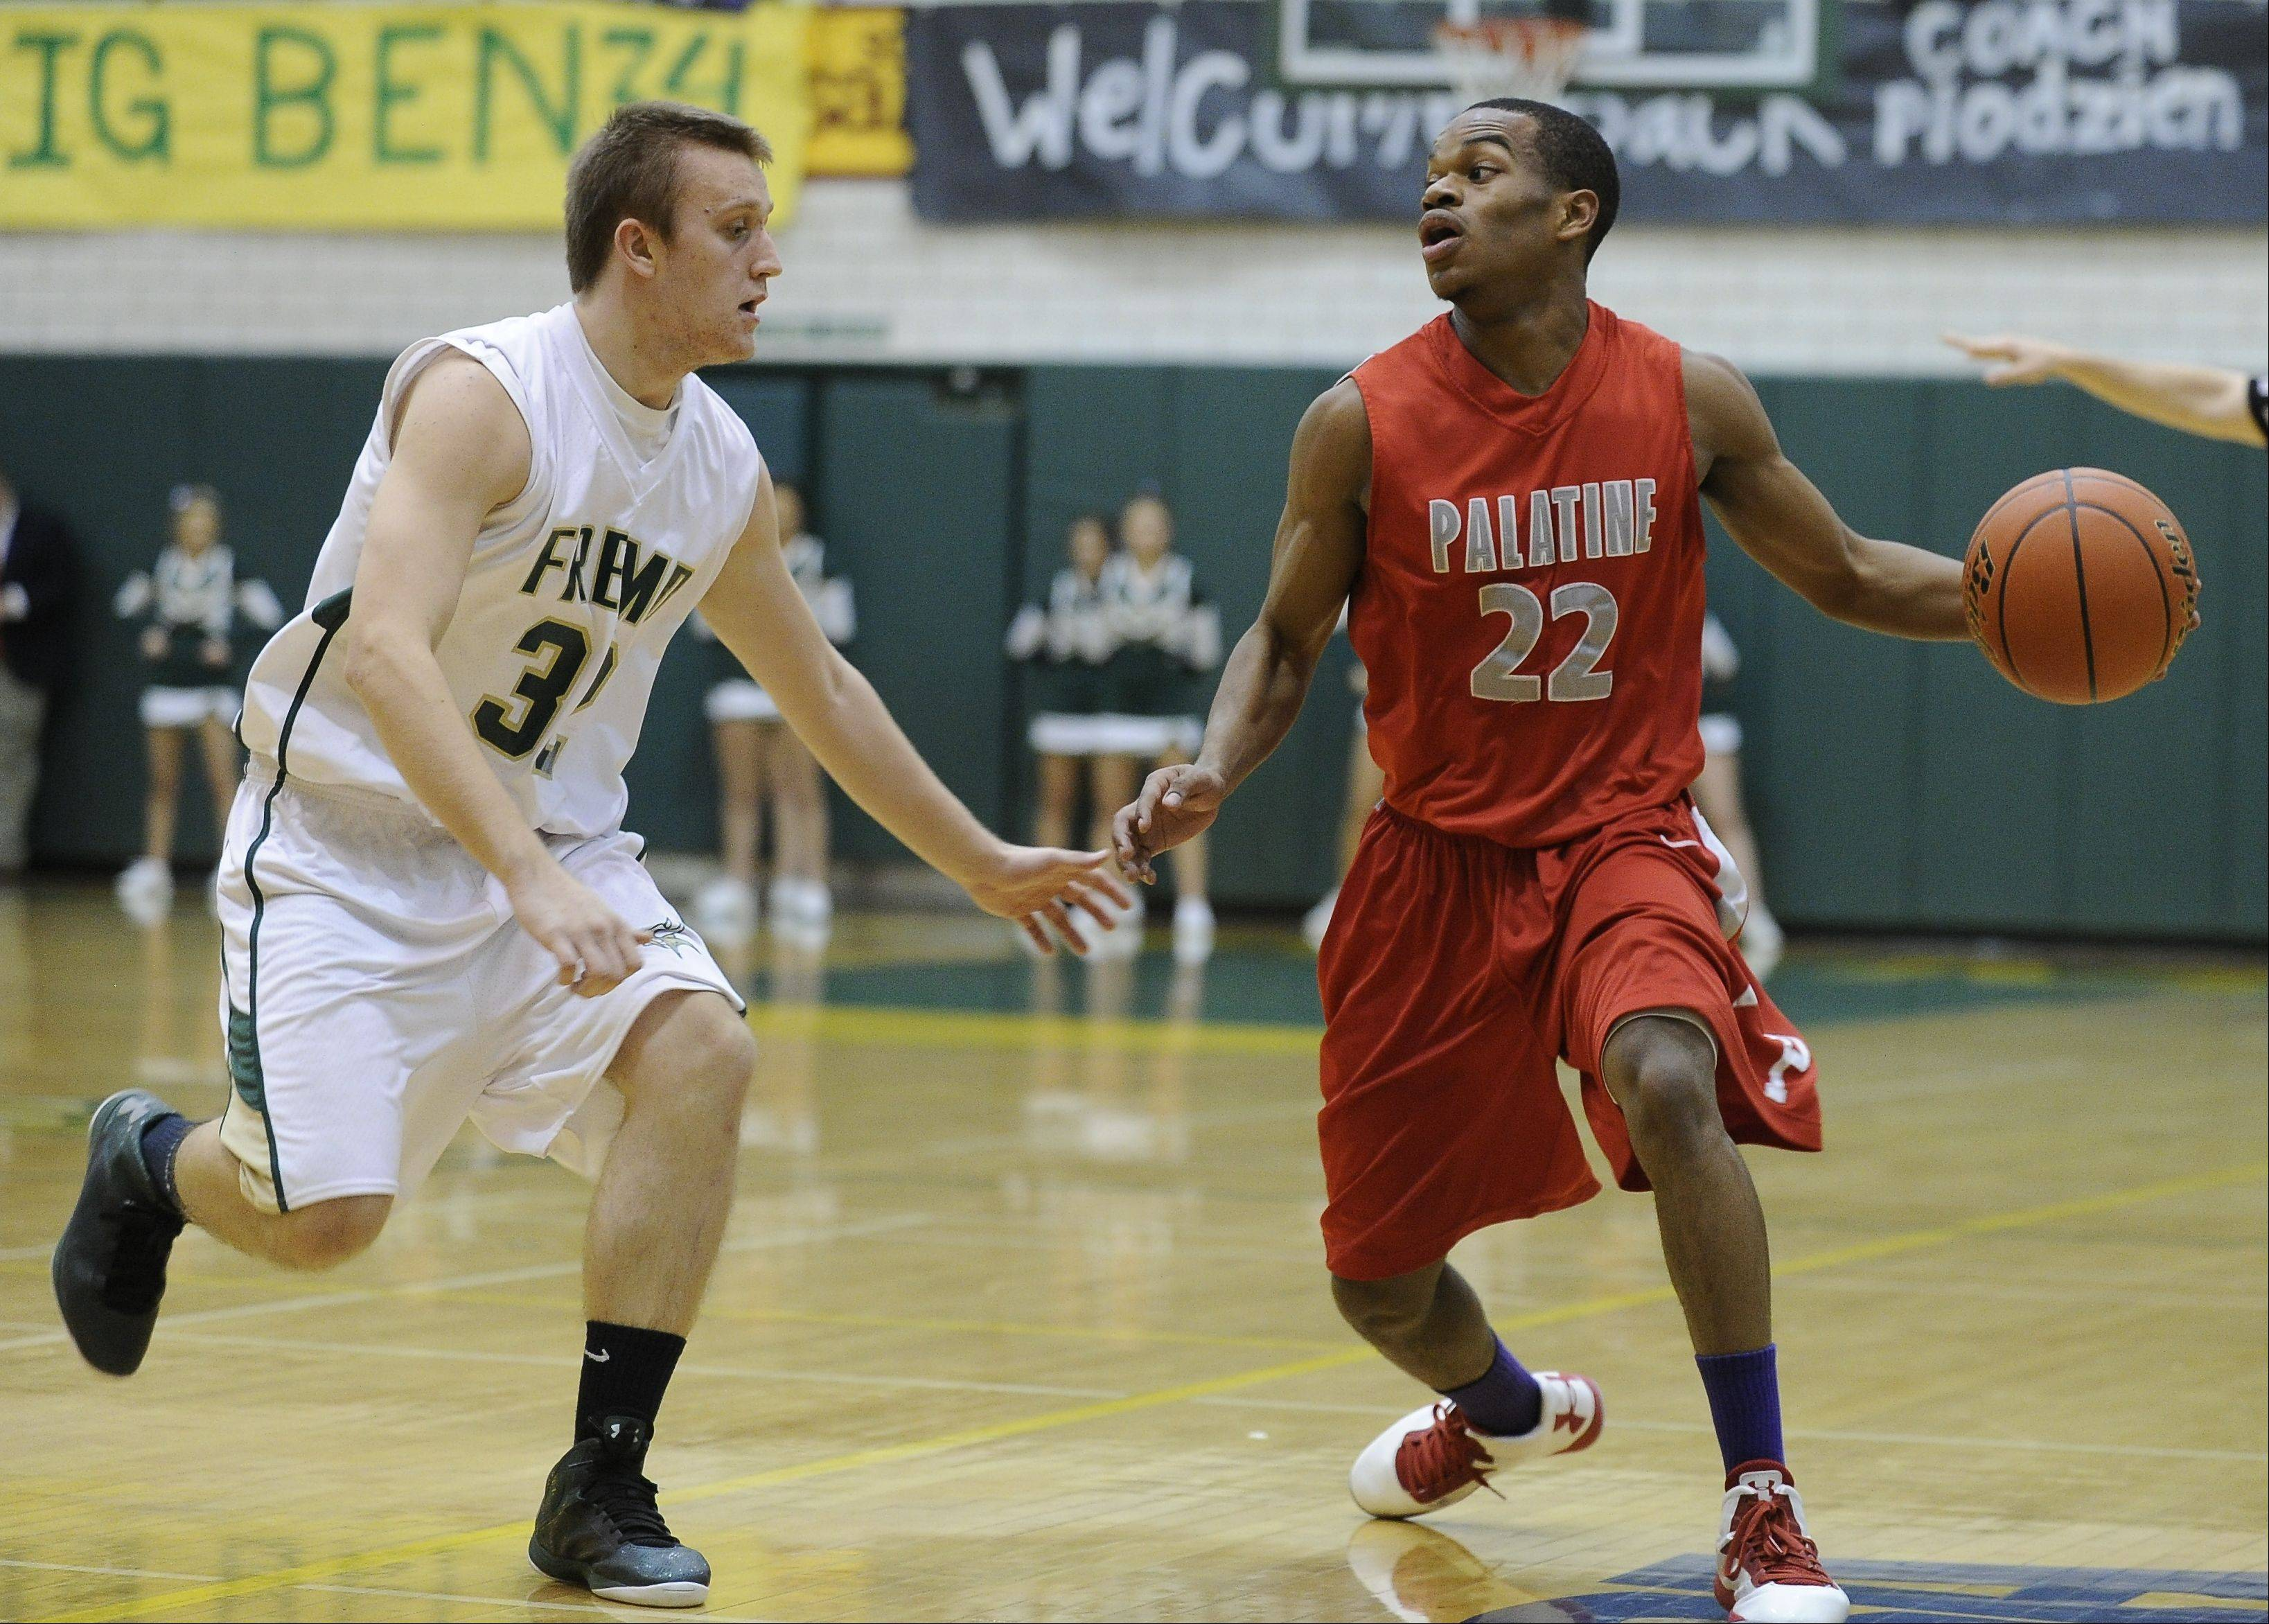 Images from the Palatine vs. Fremd boys basketball game Friday, November 30th, in Palatine.